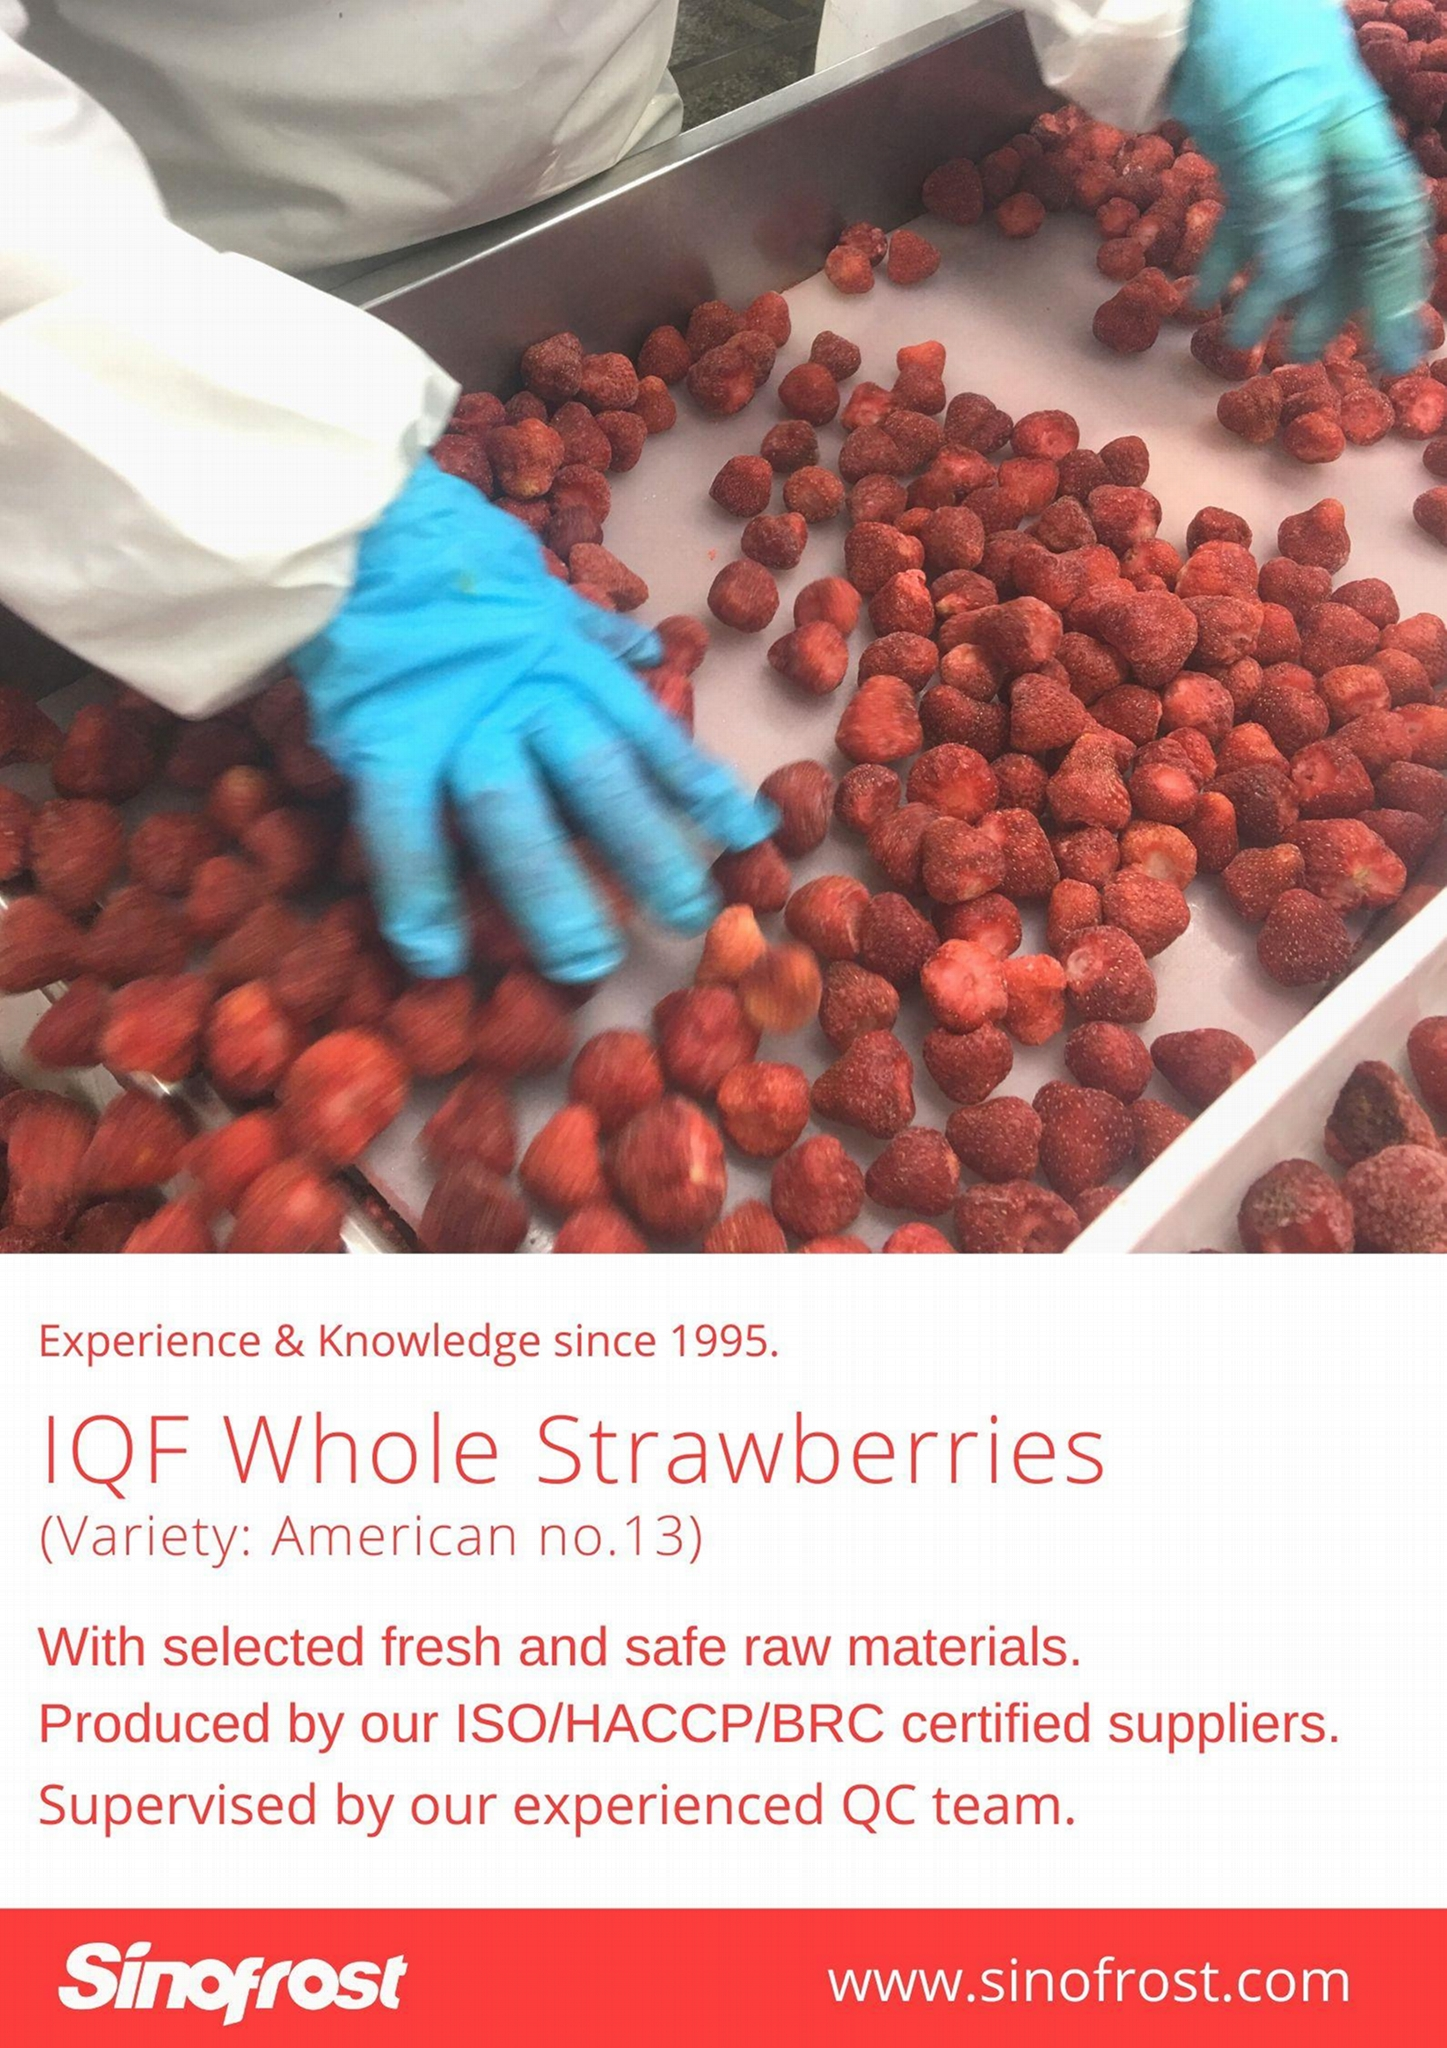 IQF Diced Strawberries,Frozen Strawberry Dices,IQF Sliced Strawberries 16